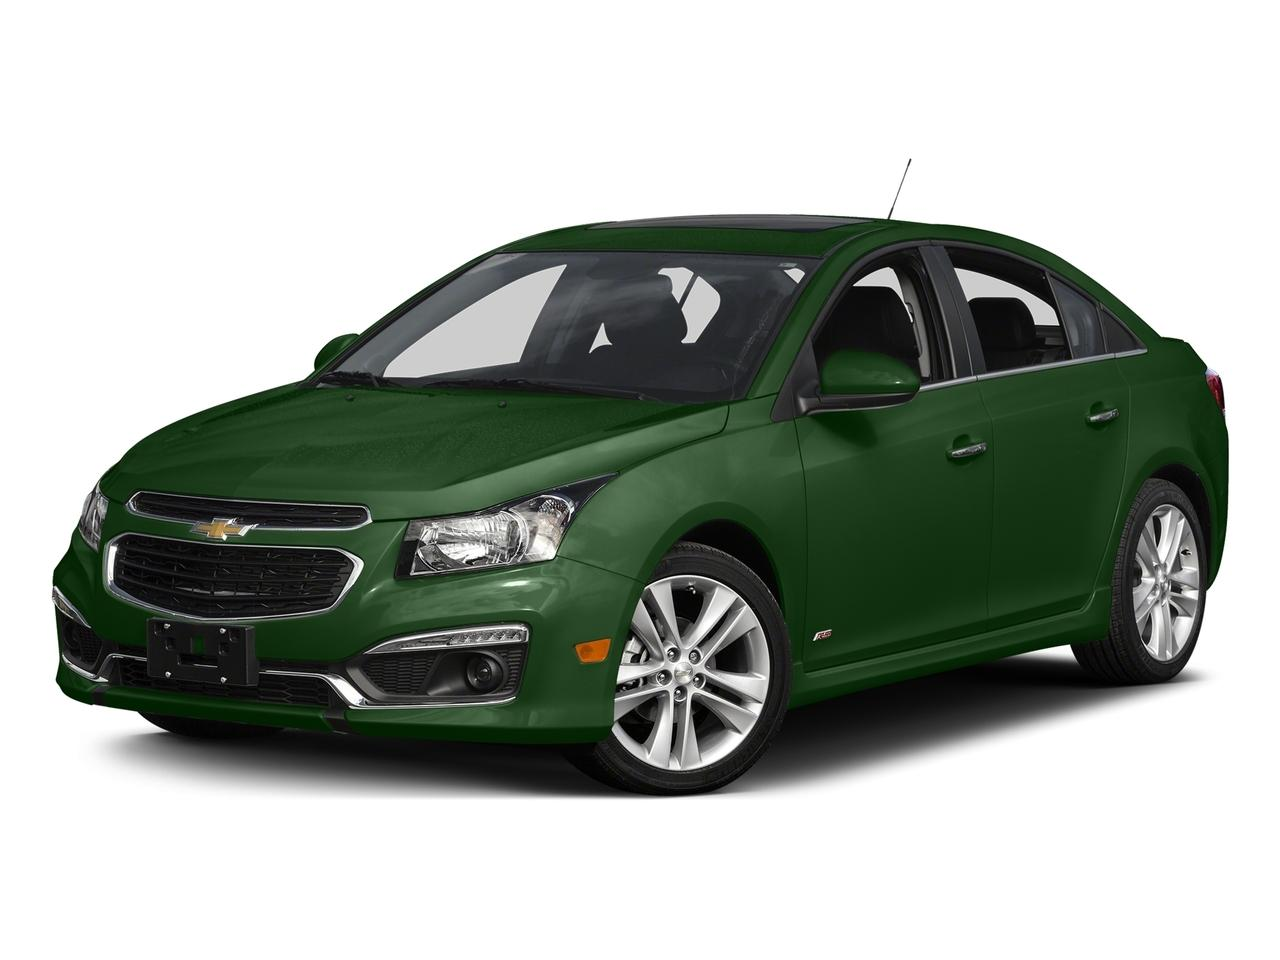 2015 Chevrolet Cruze Vehicle Photo in Safford, AZ 85546